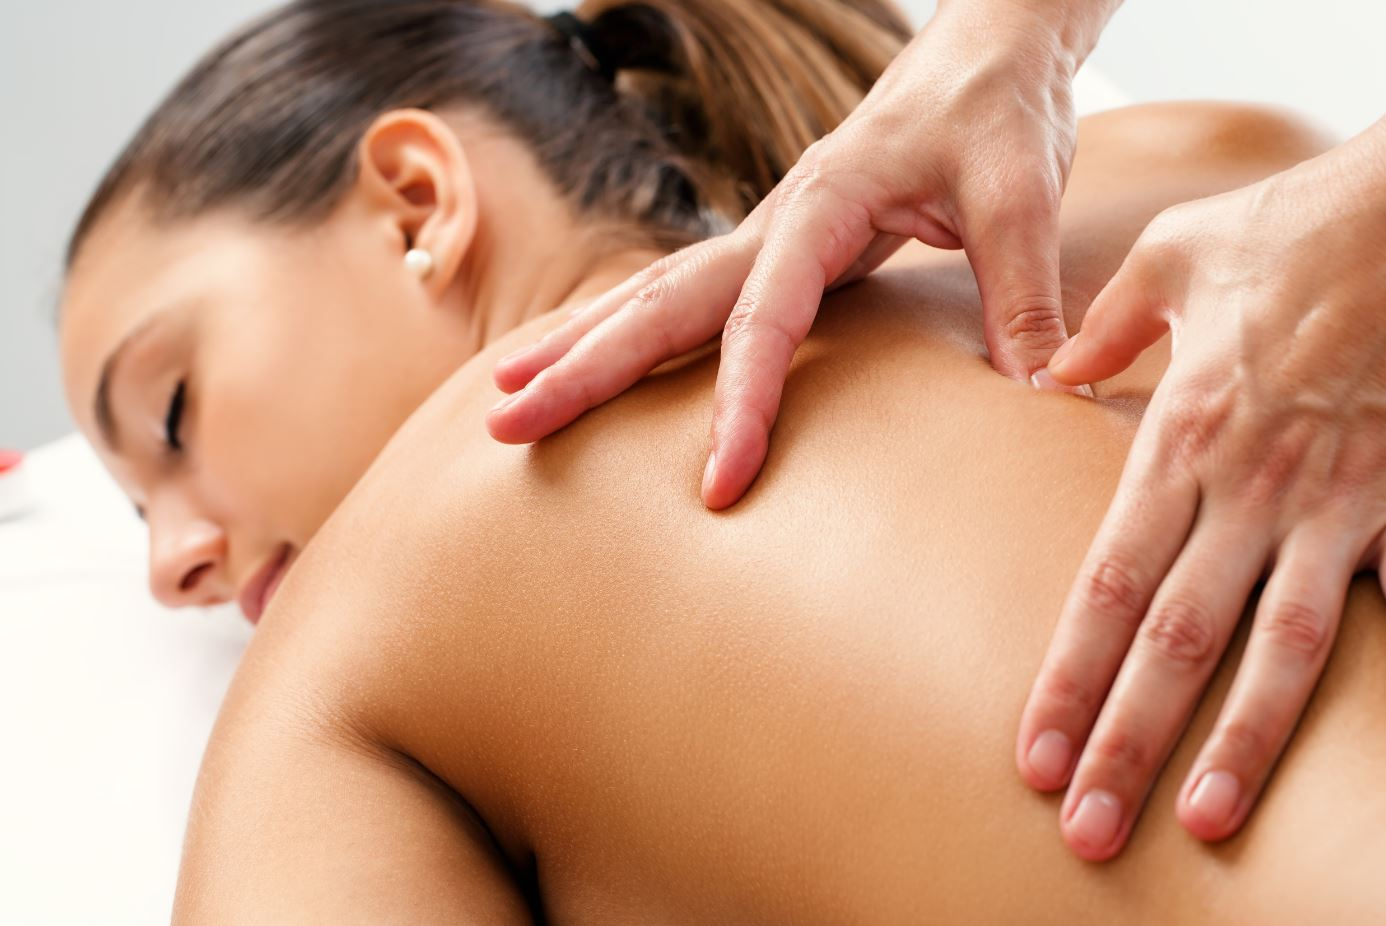 50-Minute Massage for $50 Image